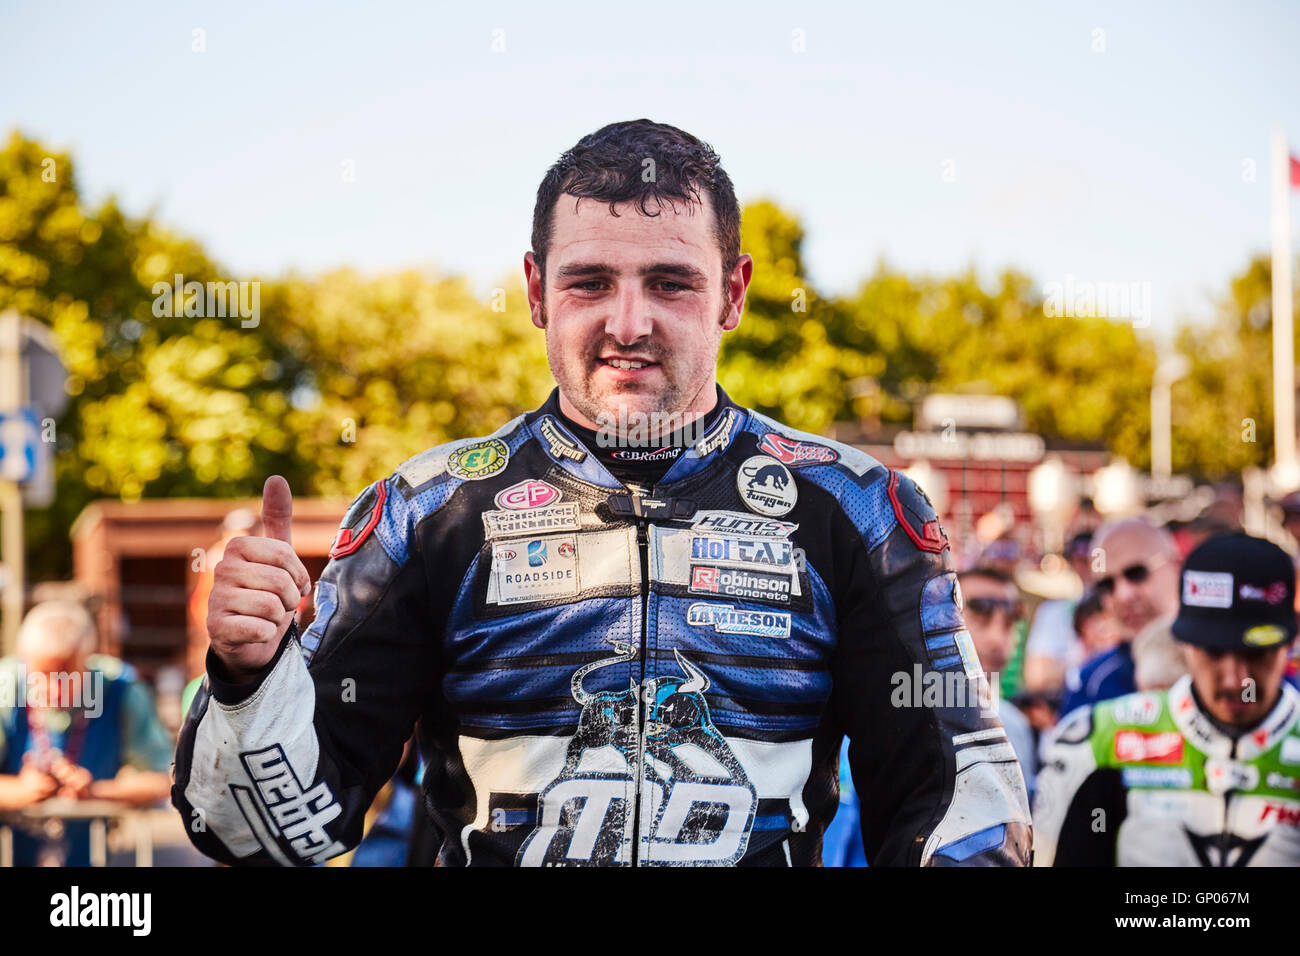 Michael Dunlop winner, in the TT classic superbike race at the Manx Festival of Motorcycling 2016. Stock Photo